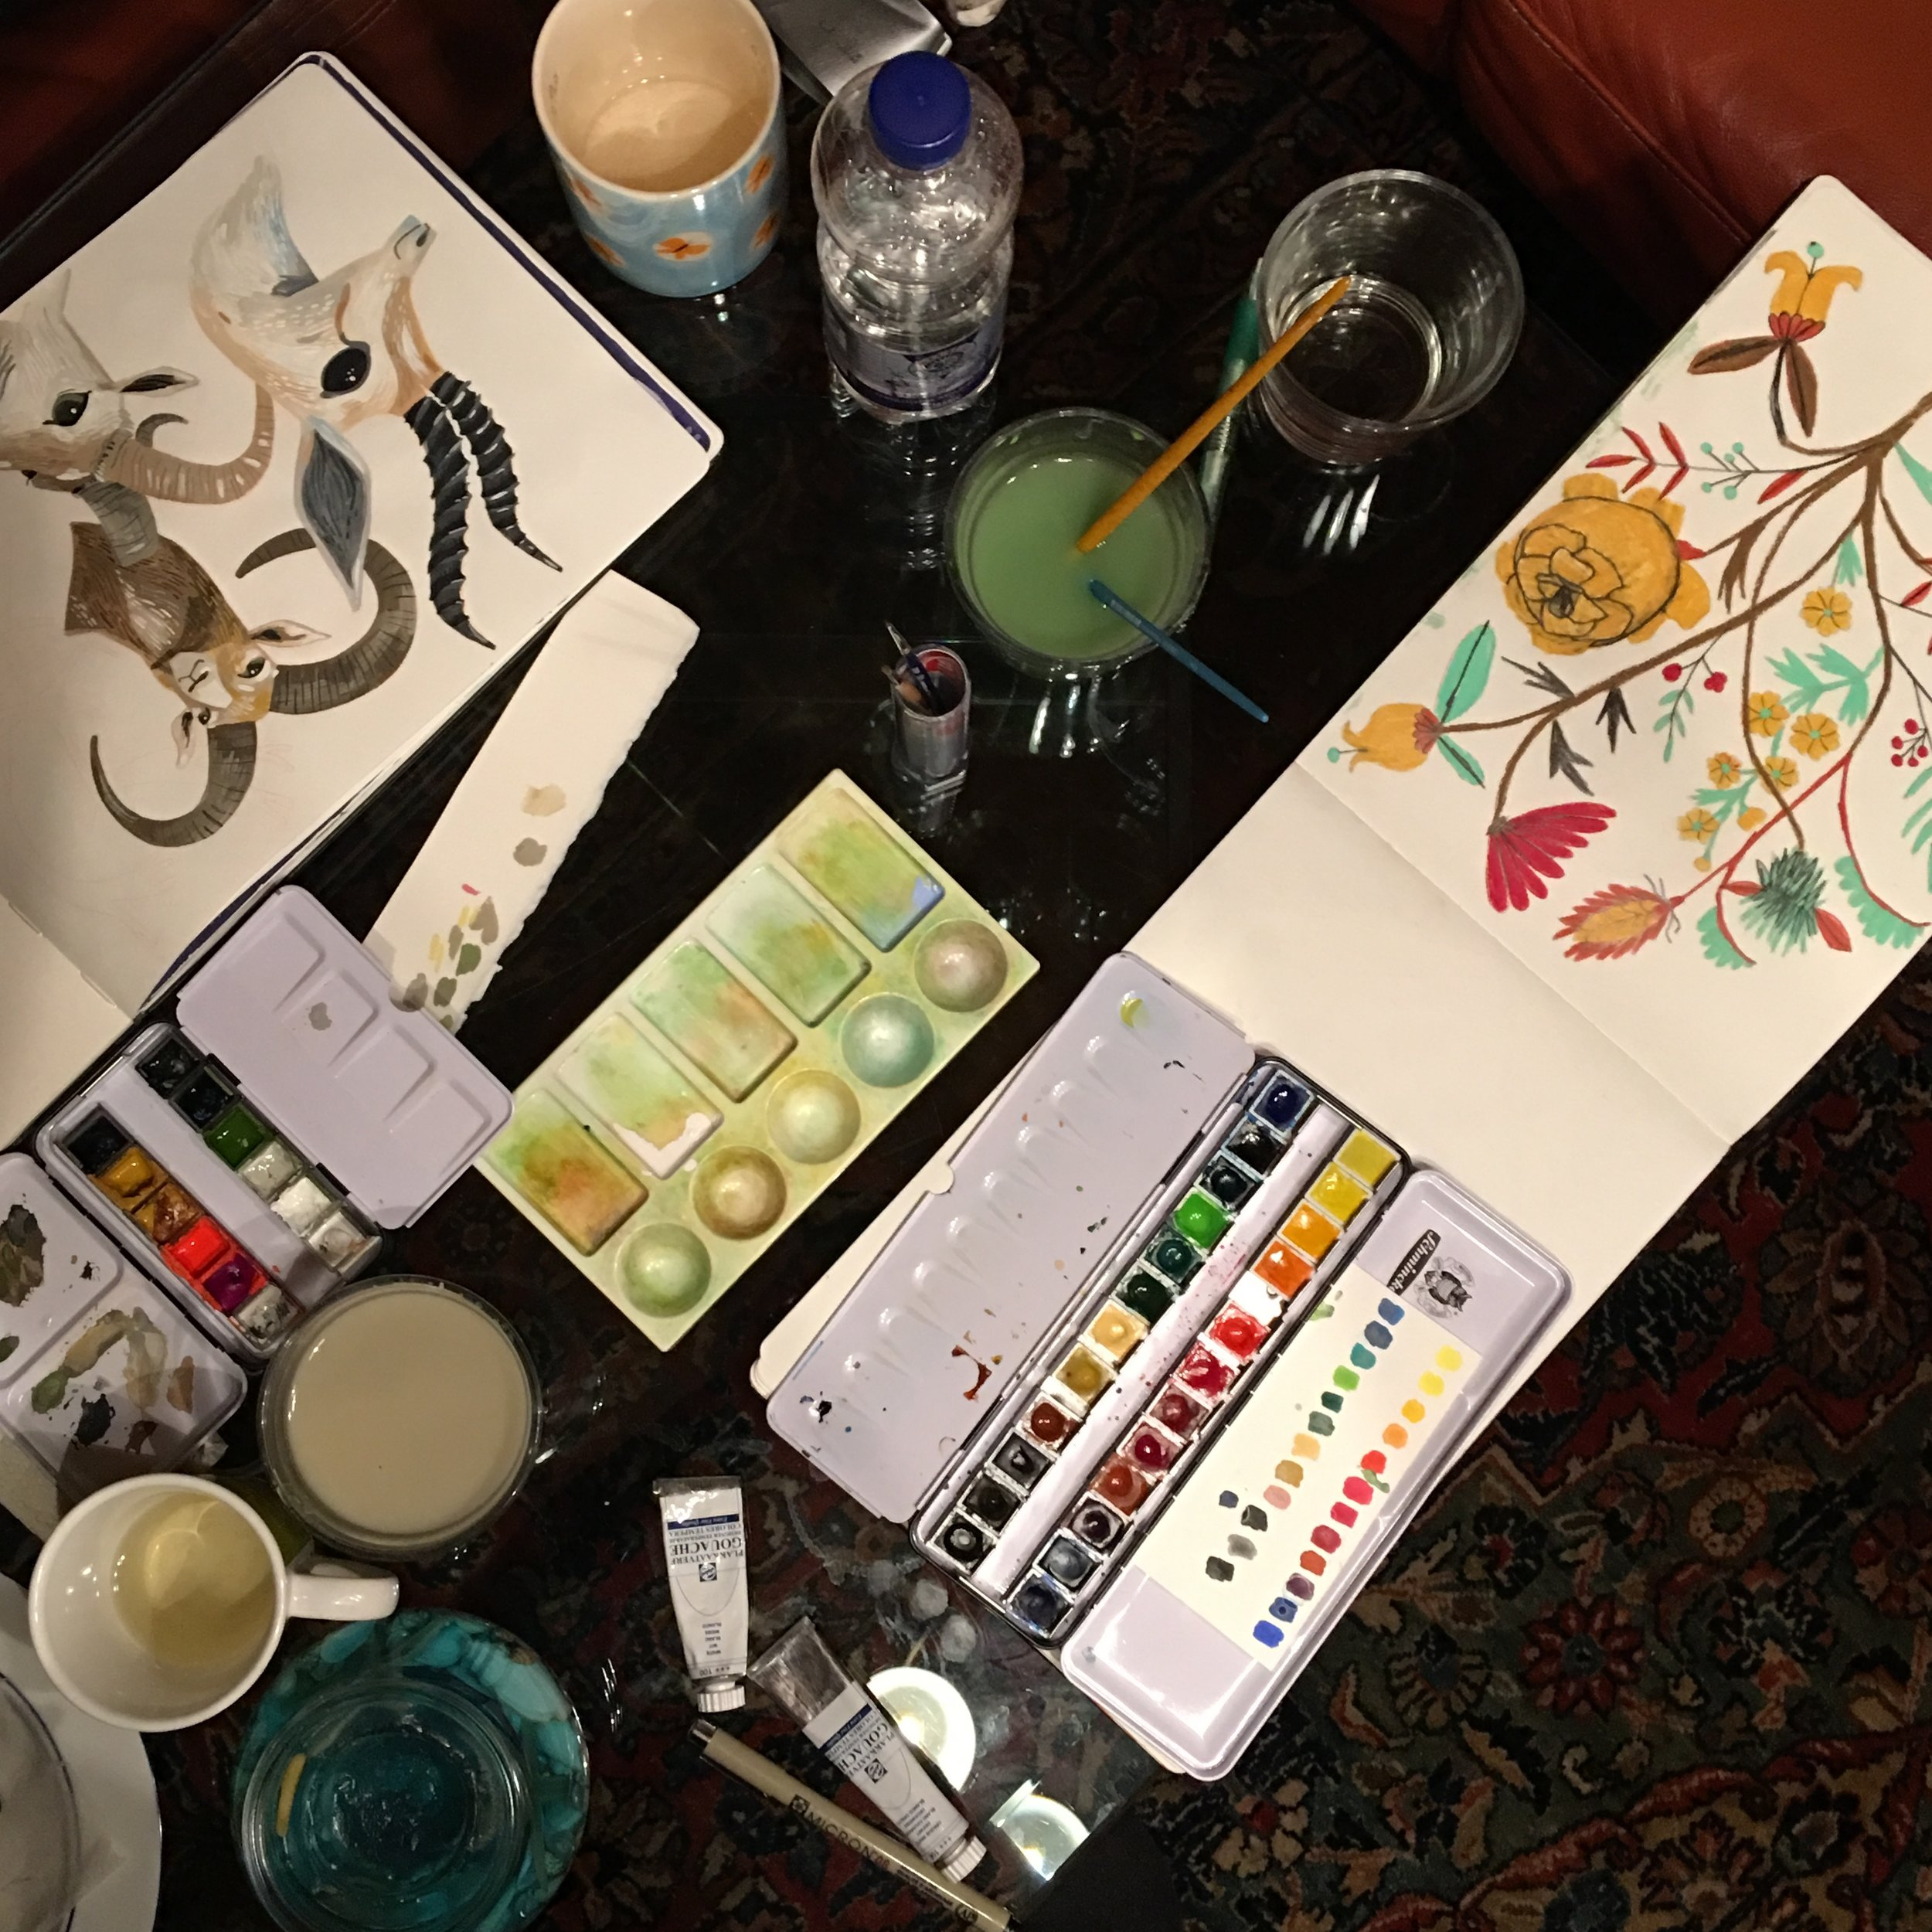 Rae Ritchie sketchbook (left) and Anisa Makhoul's (right)